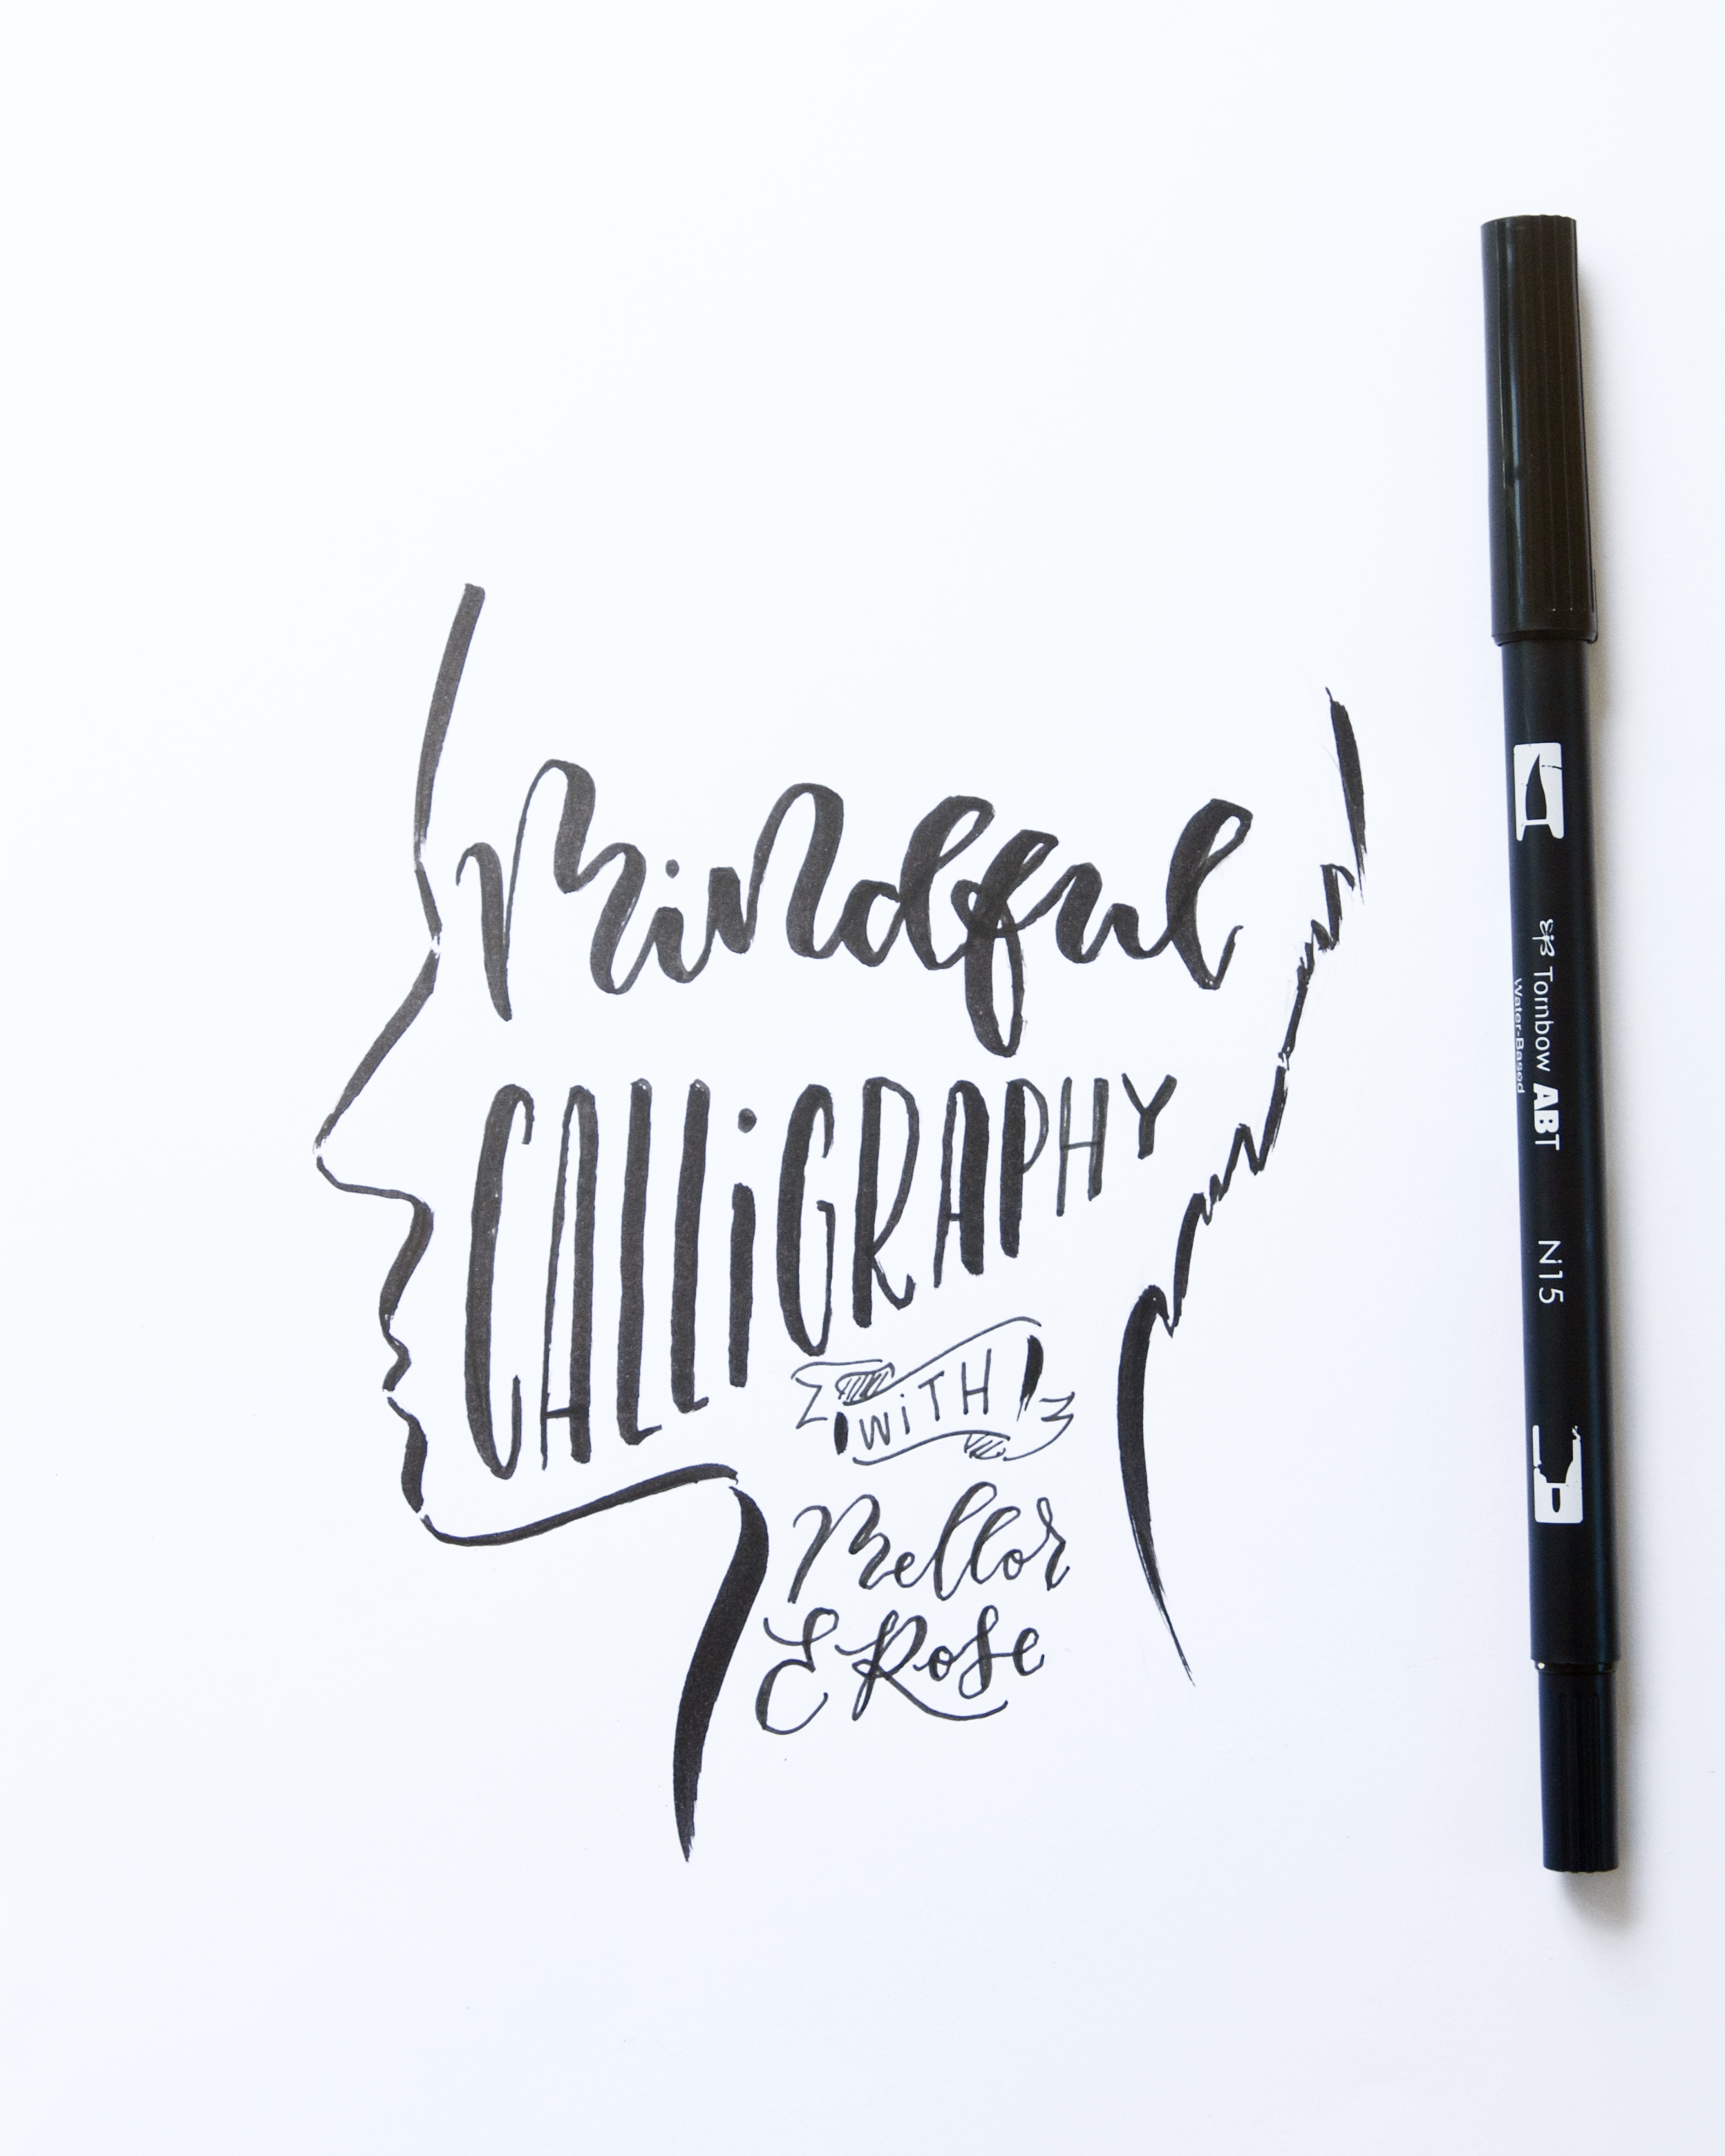 Journal: Modern Calligraphy and Brush Lettering. So, what's the difference? Mellor & Rose Lancashire